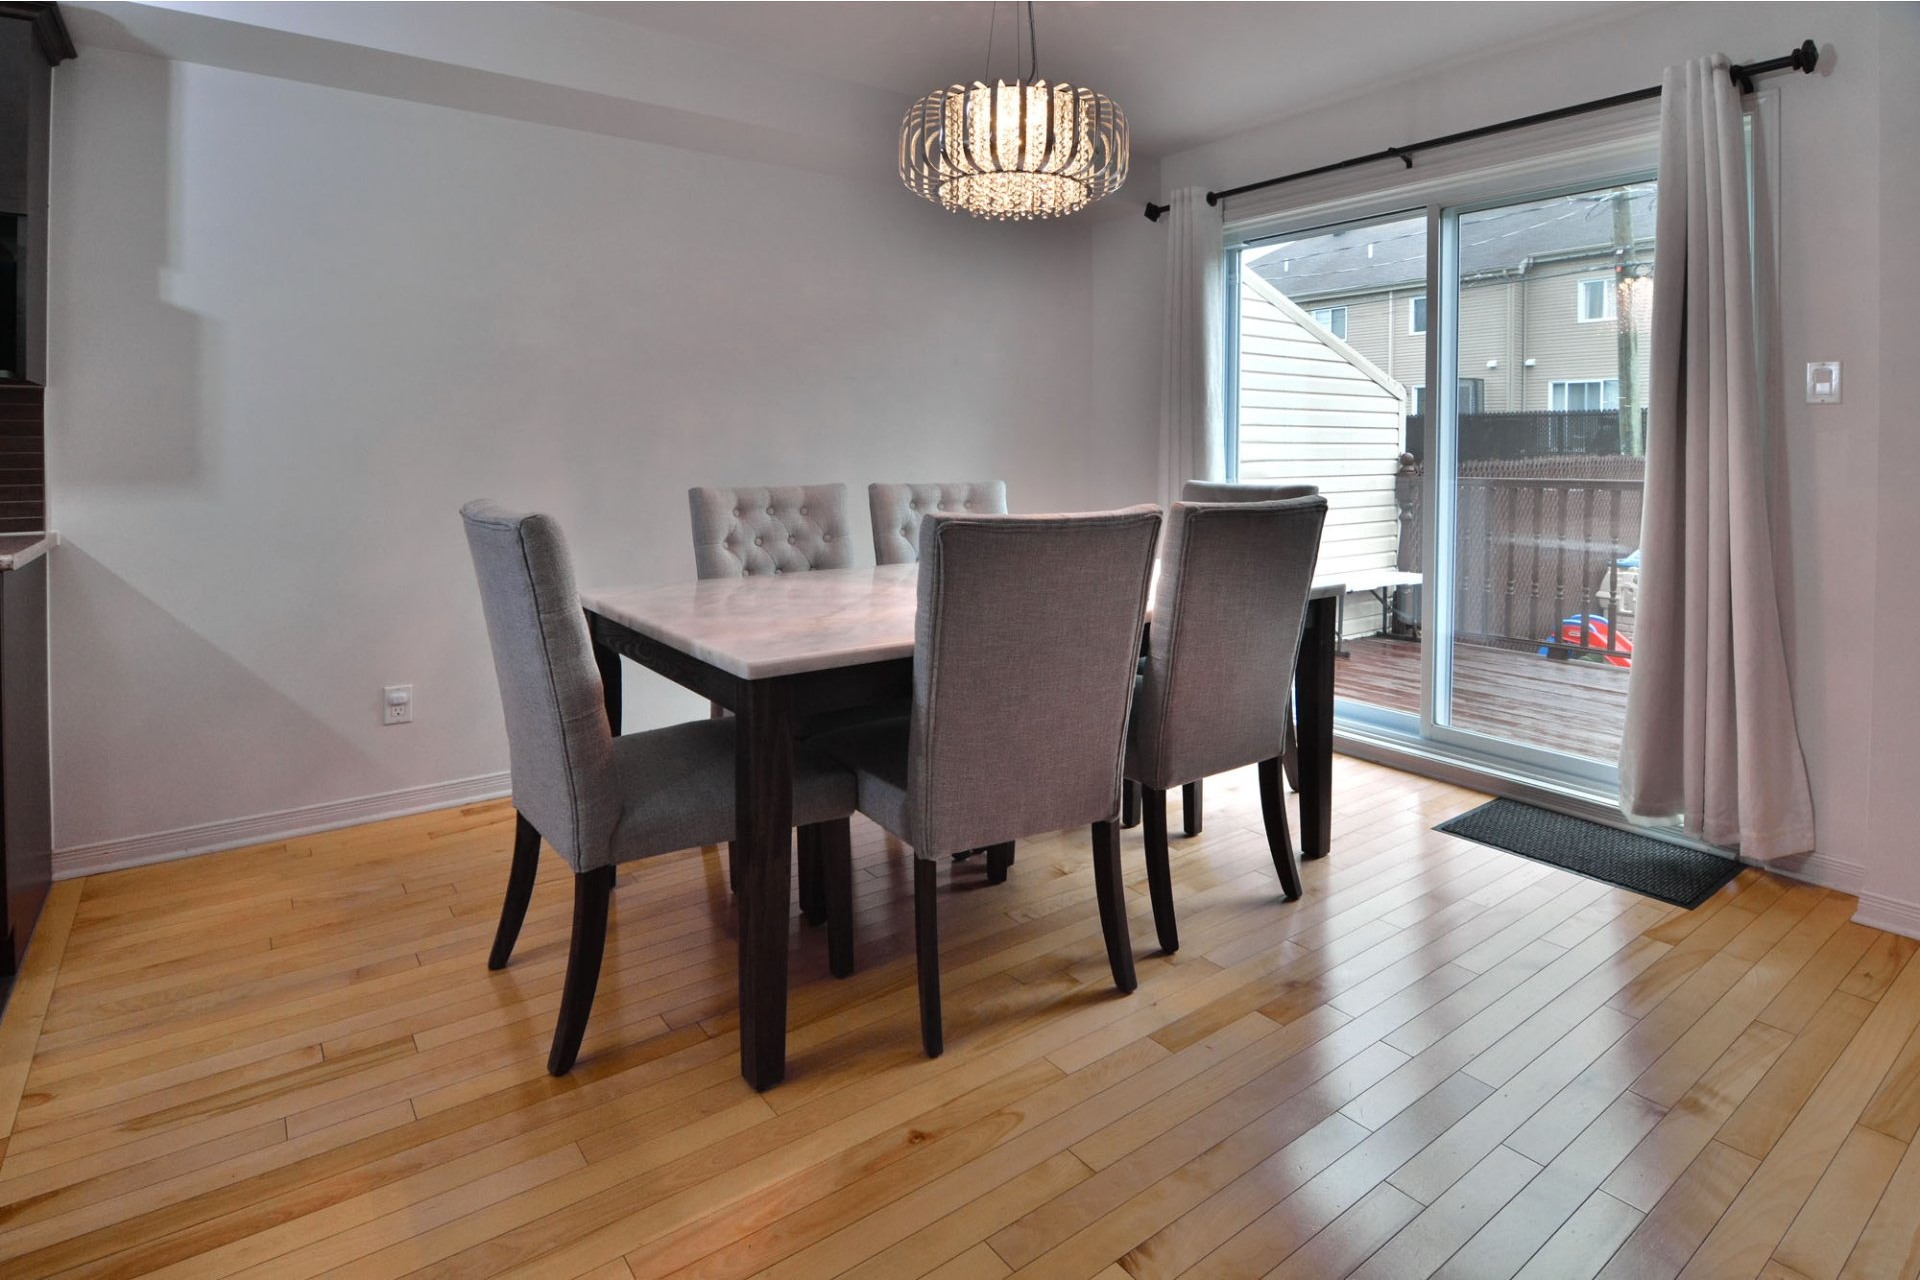 image 6 - House For sale Vaudreuil-Dorion - 12 rooms